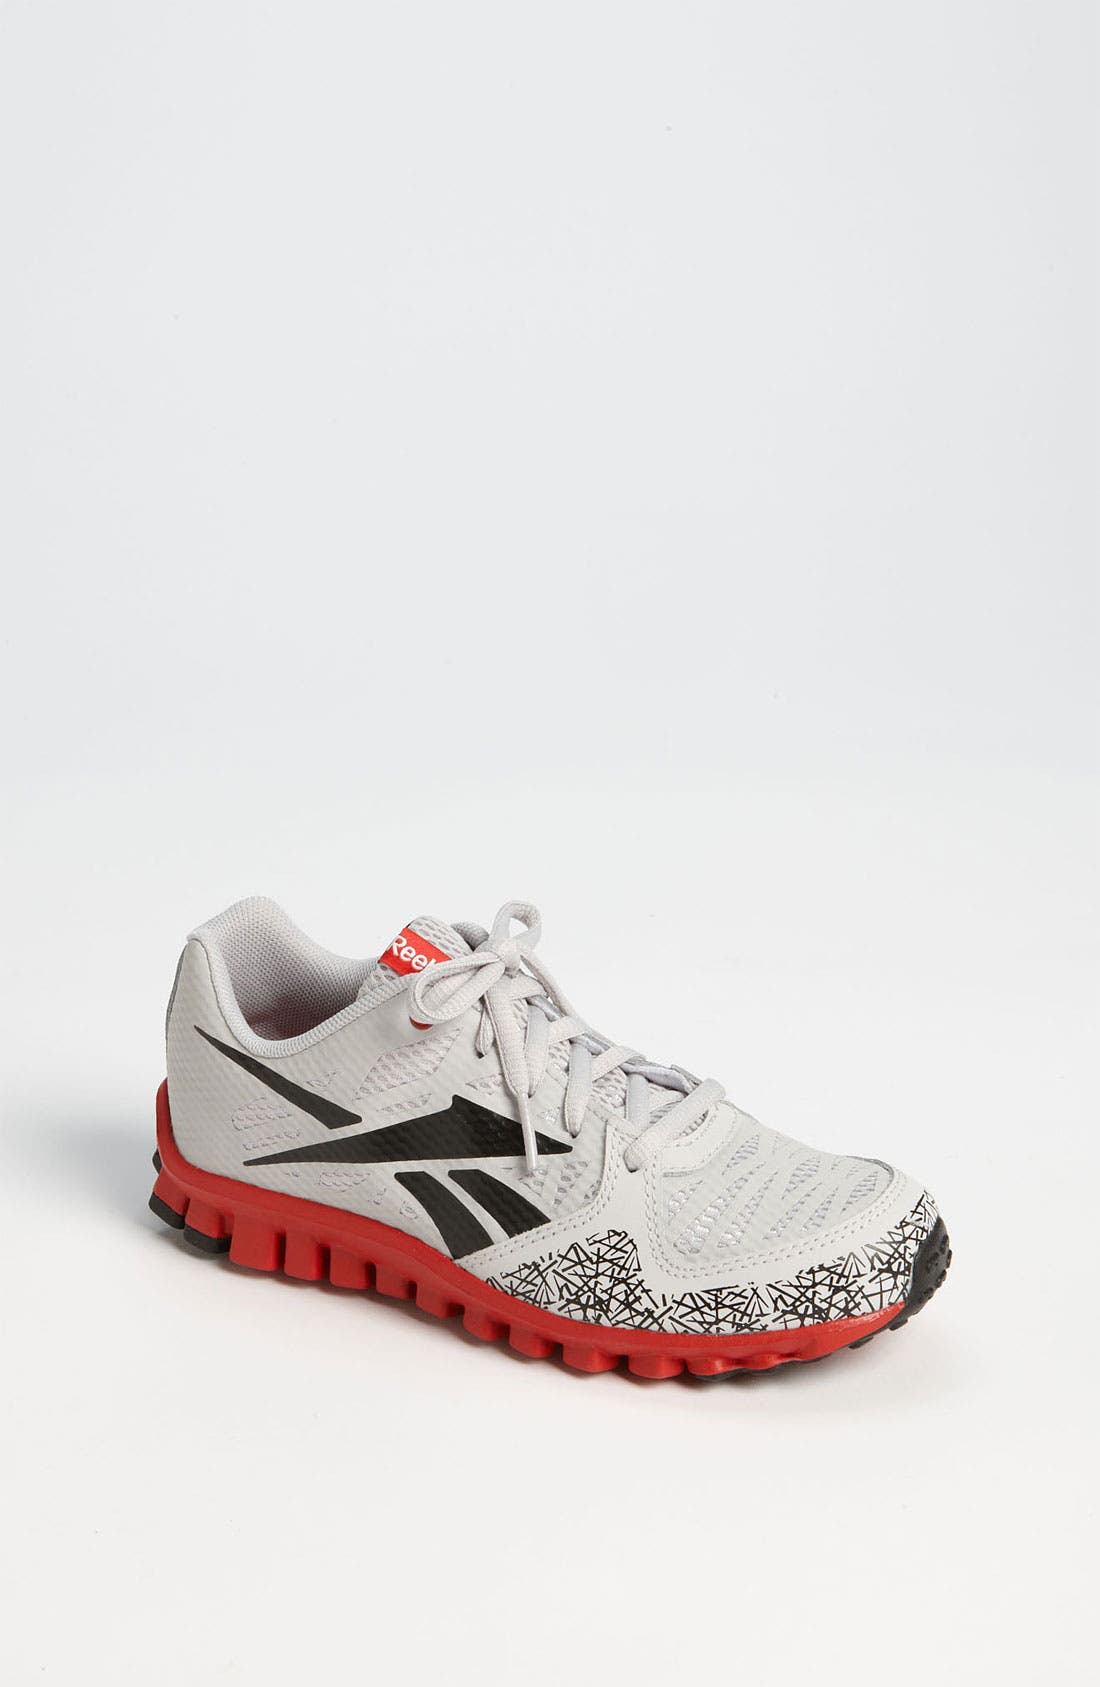 Alternate Image 1 Selected - Reebok 'RealFlex Transition 2.0' Sneaker (Toddler, Little Kid & Big Kid)